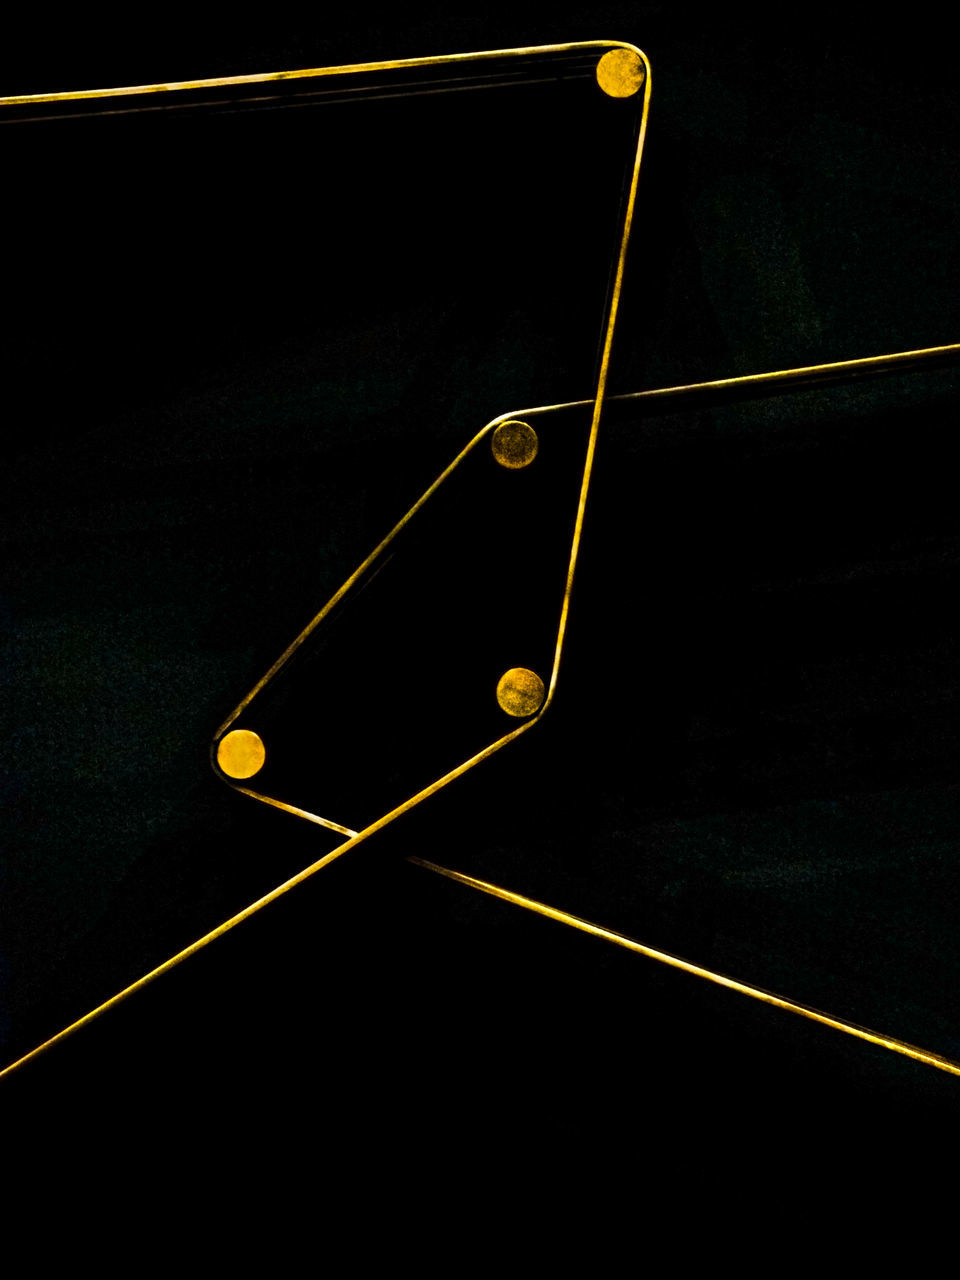 no people, night, gold colored, indoors, close-up, black background